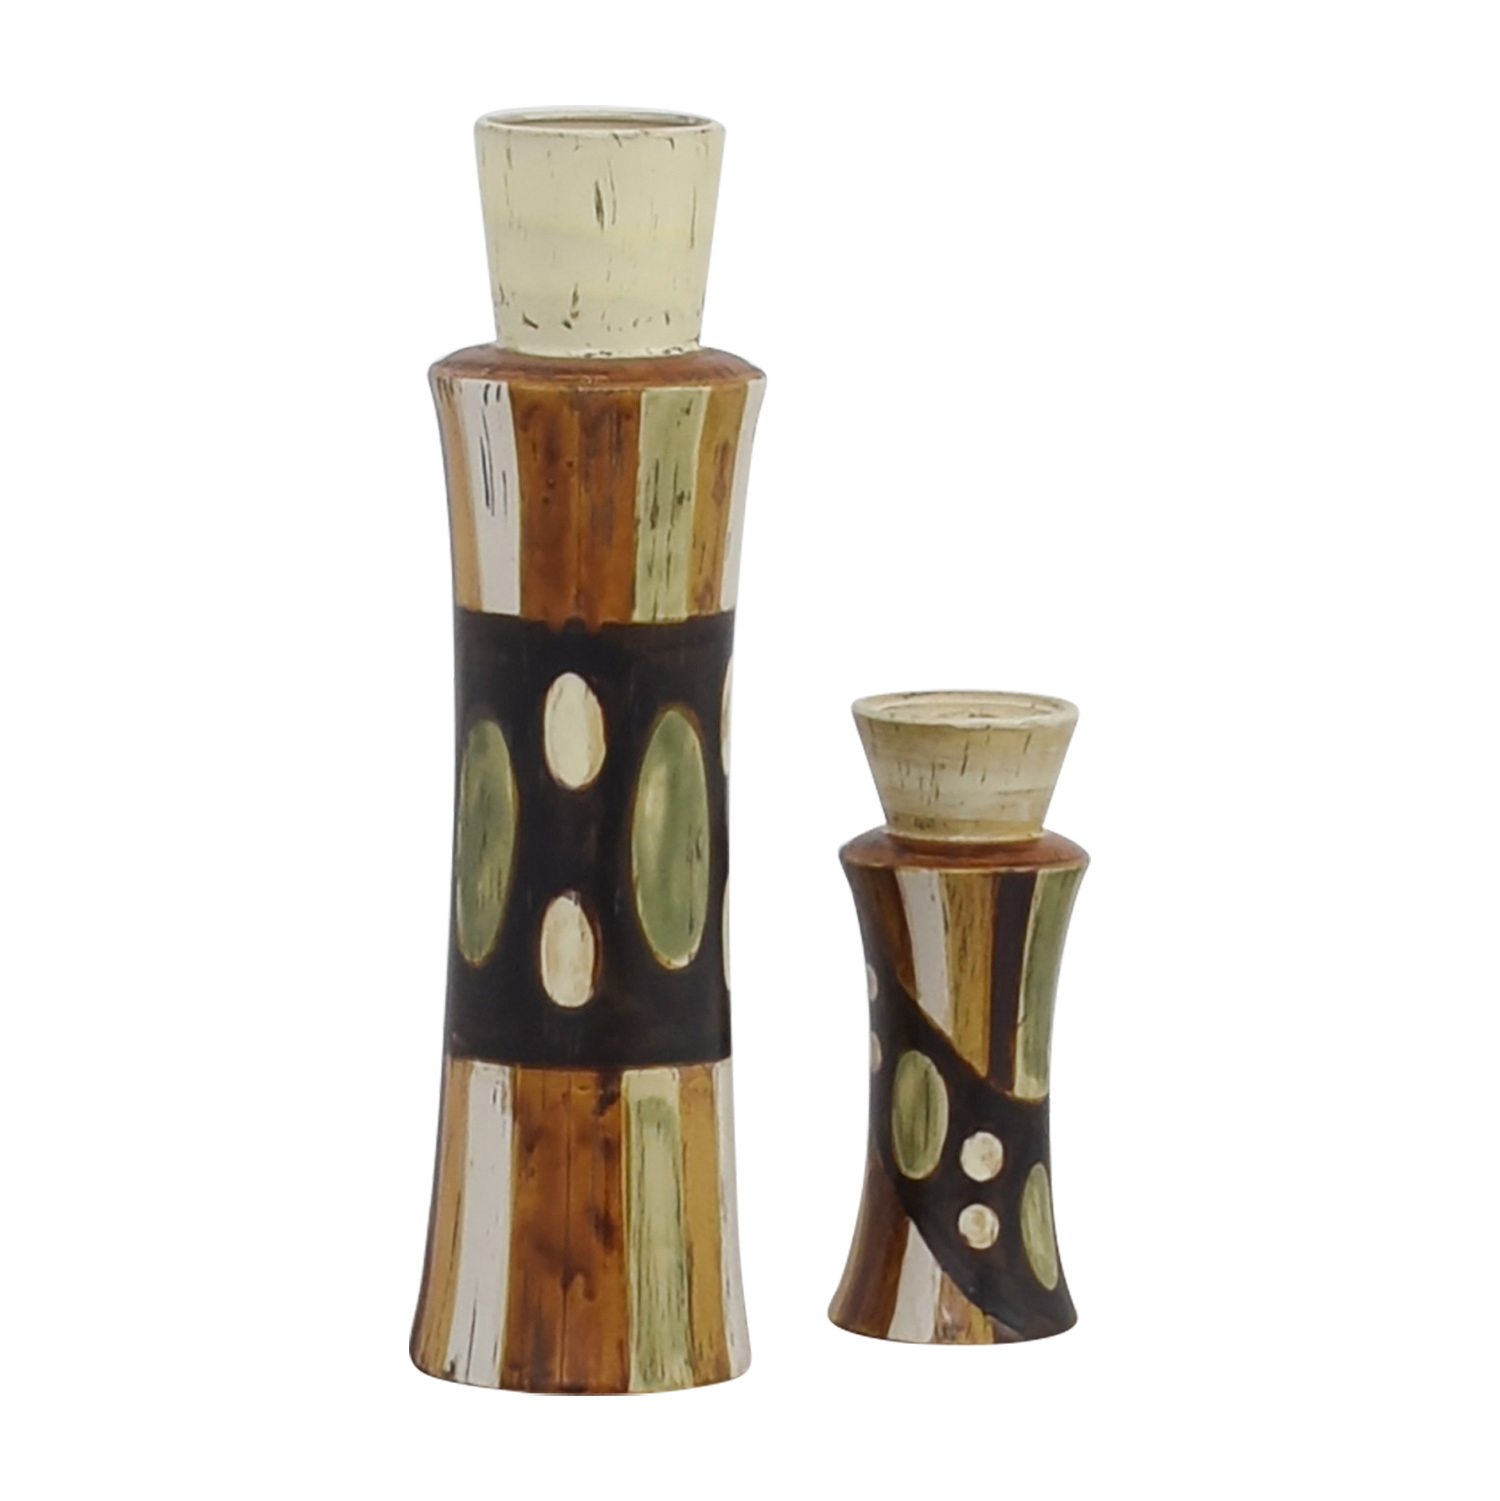 HomeGoods HomeGoods Ceramic Vase and Pillar Candle Holder on sale